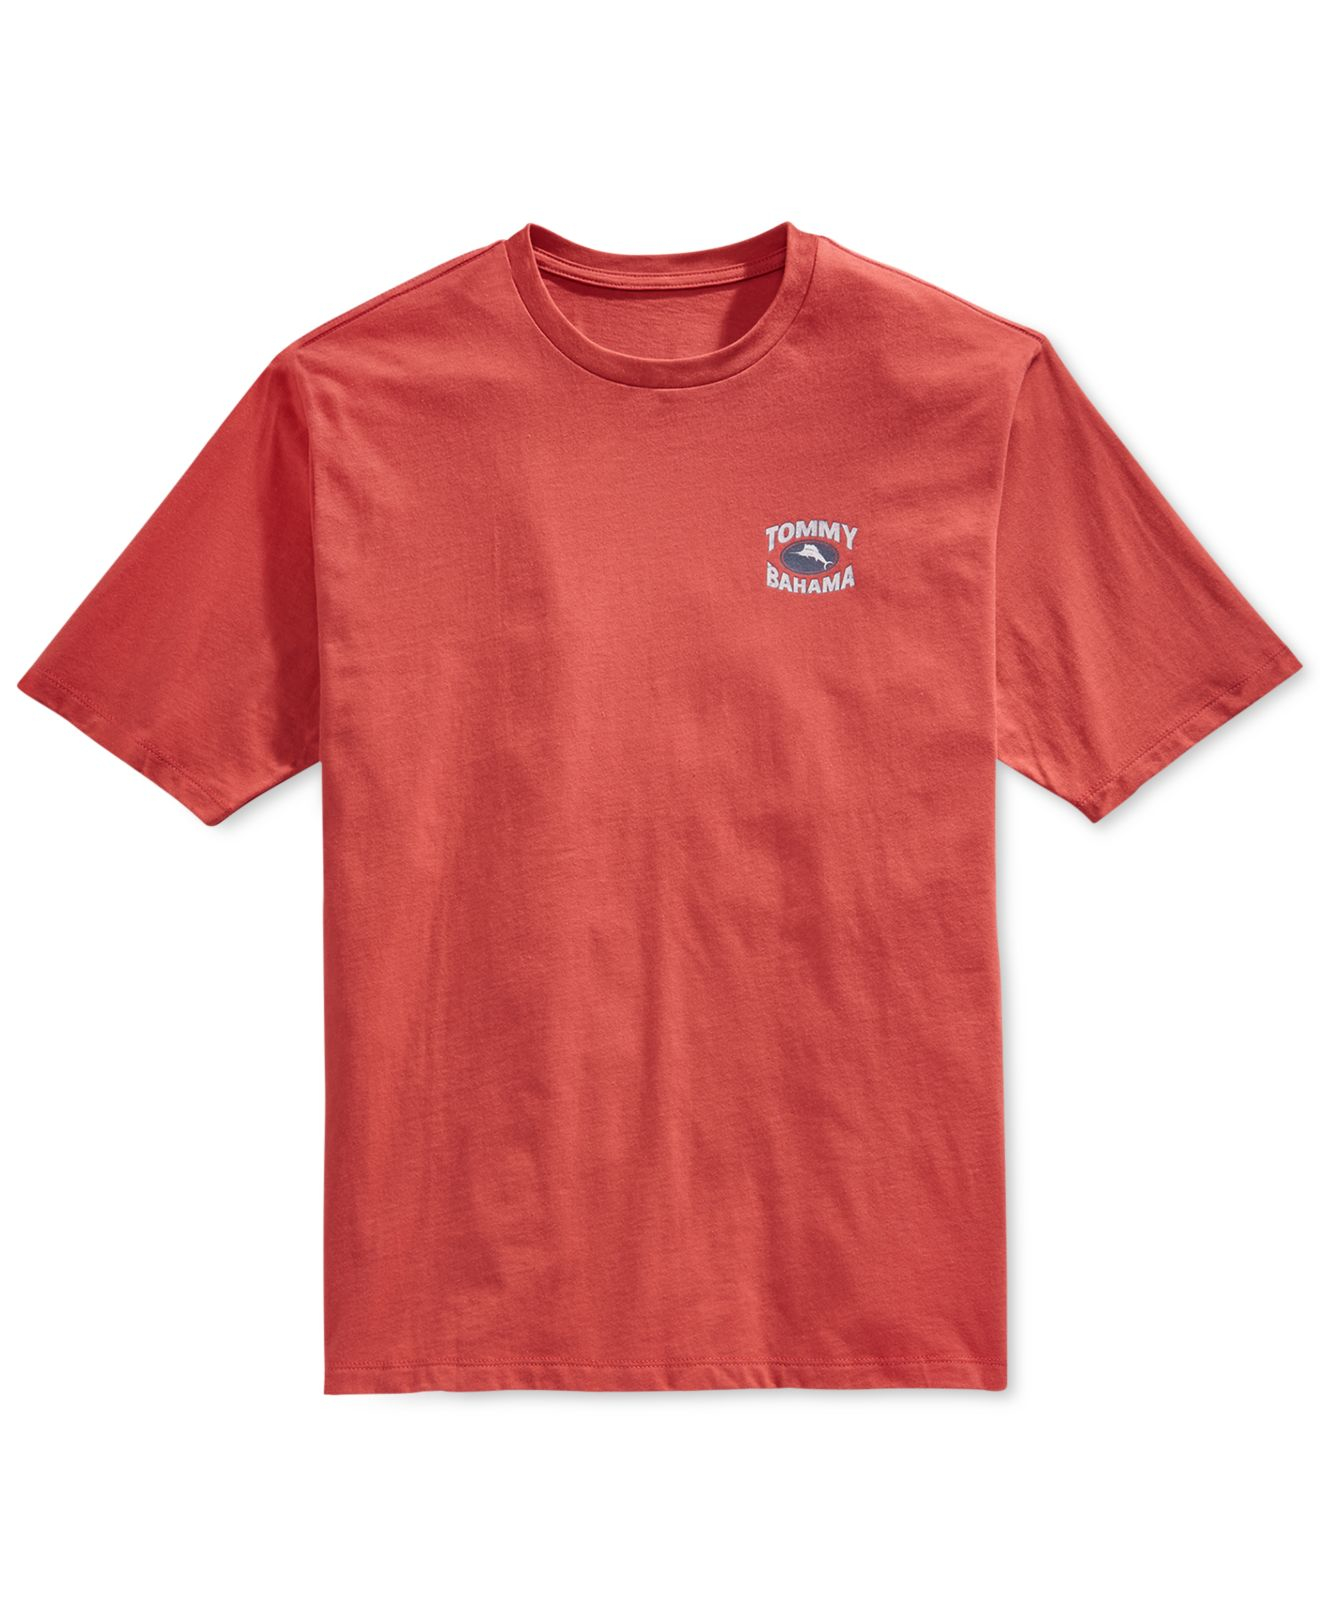 Tommy Bahama Grill Iron Graphic Print T Shirt In Red For